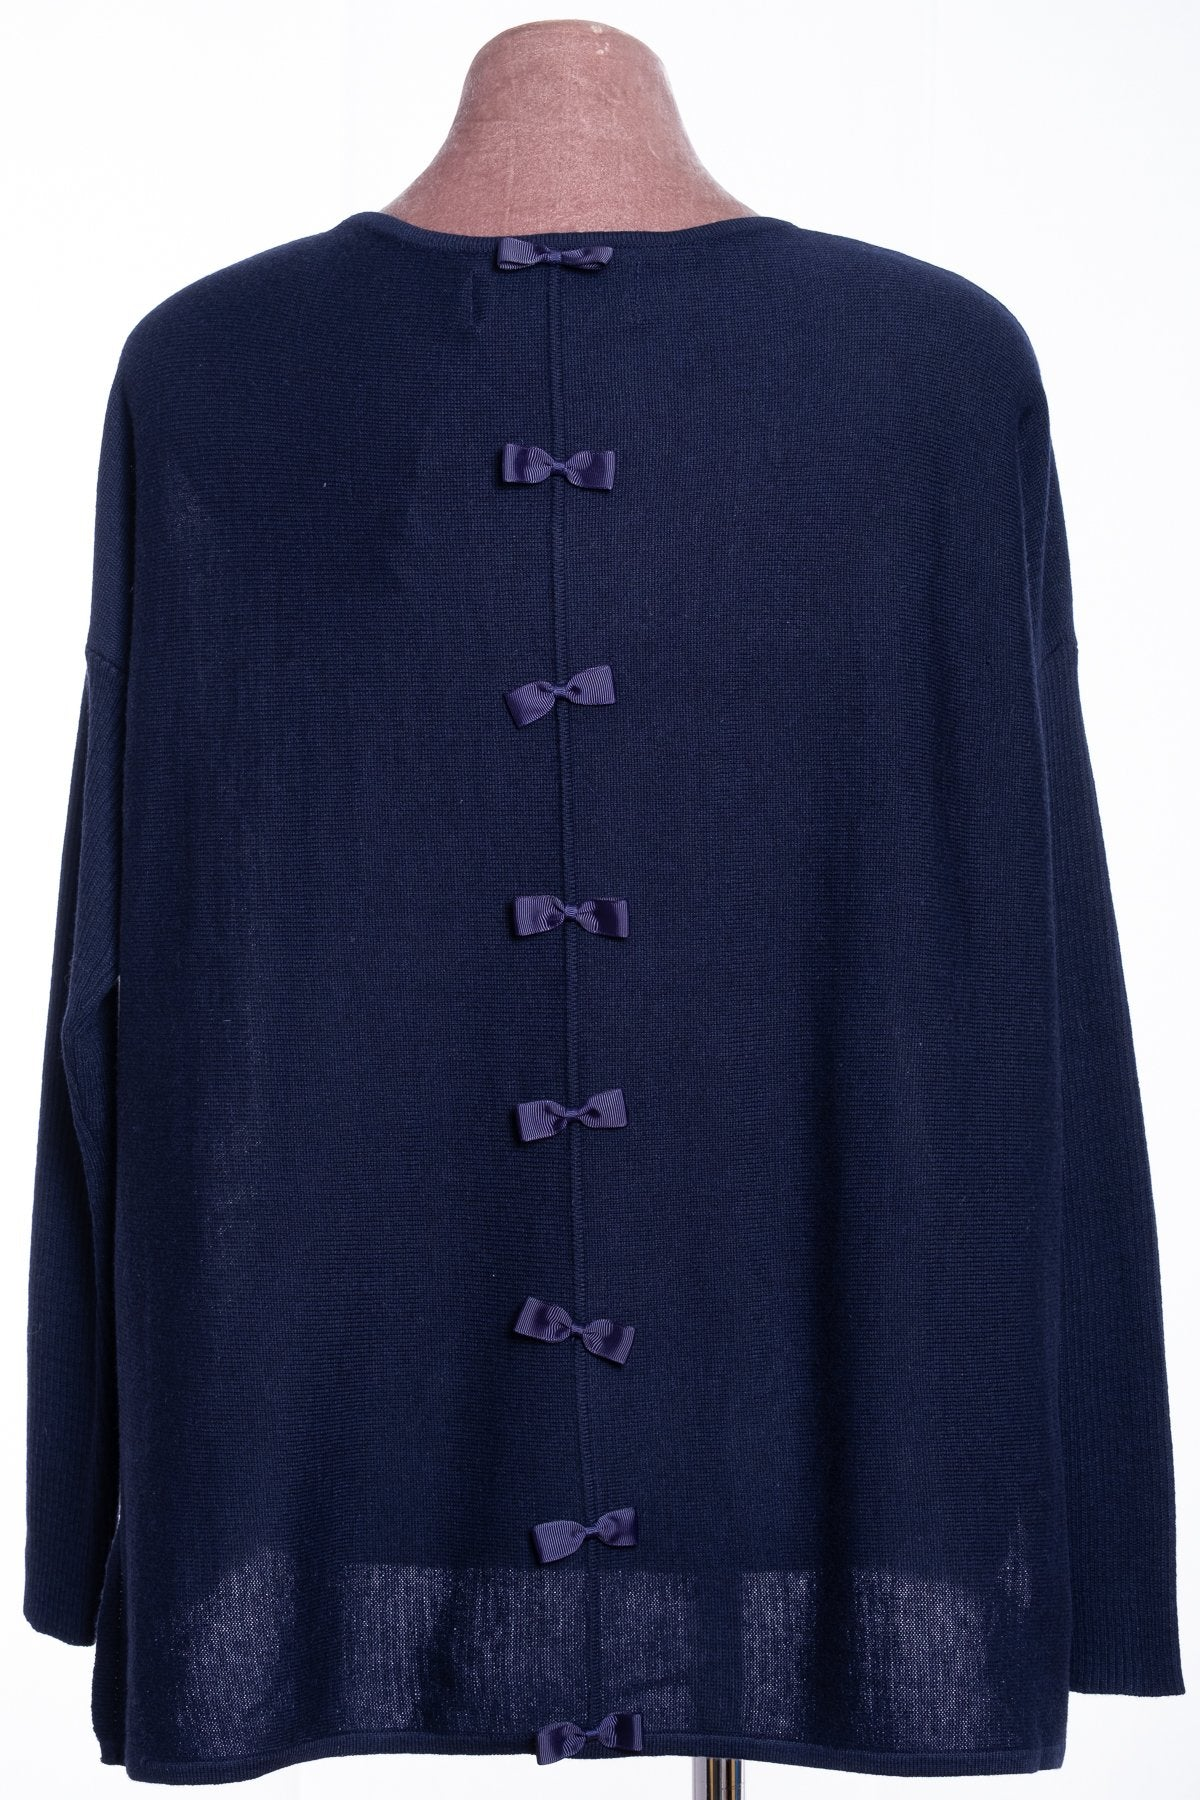 Bow backed jumper, navy